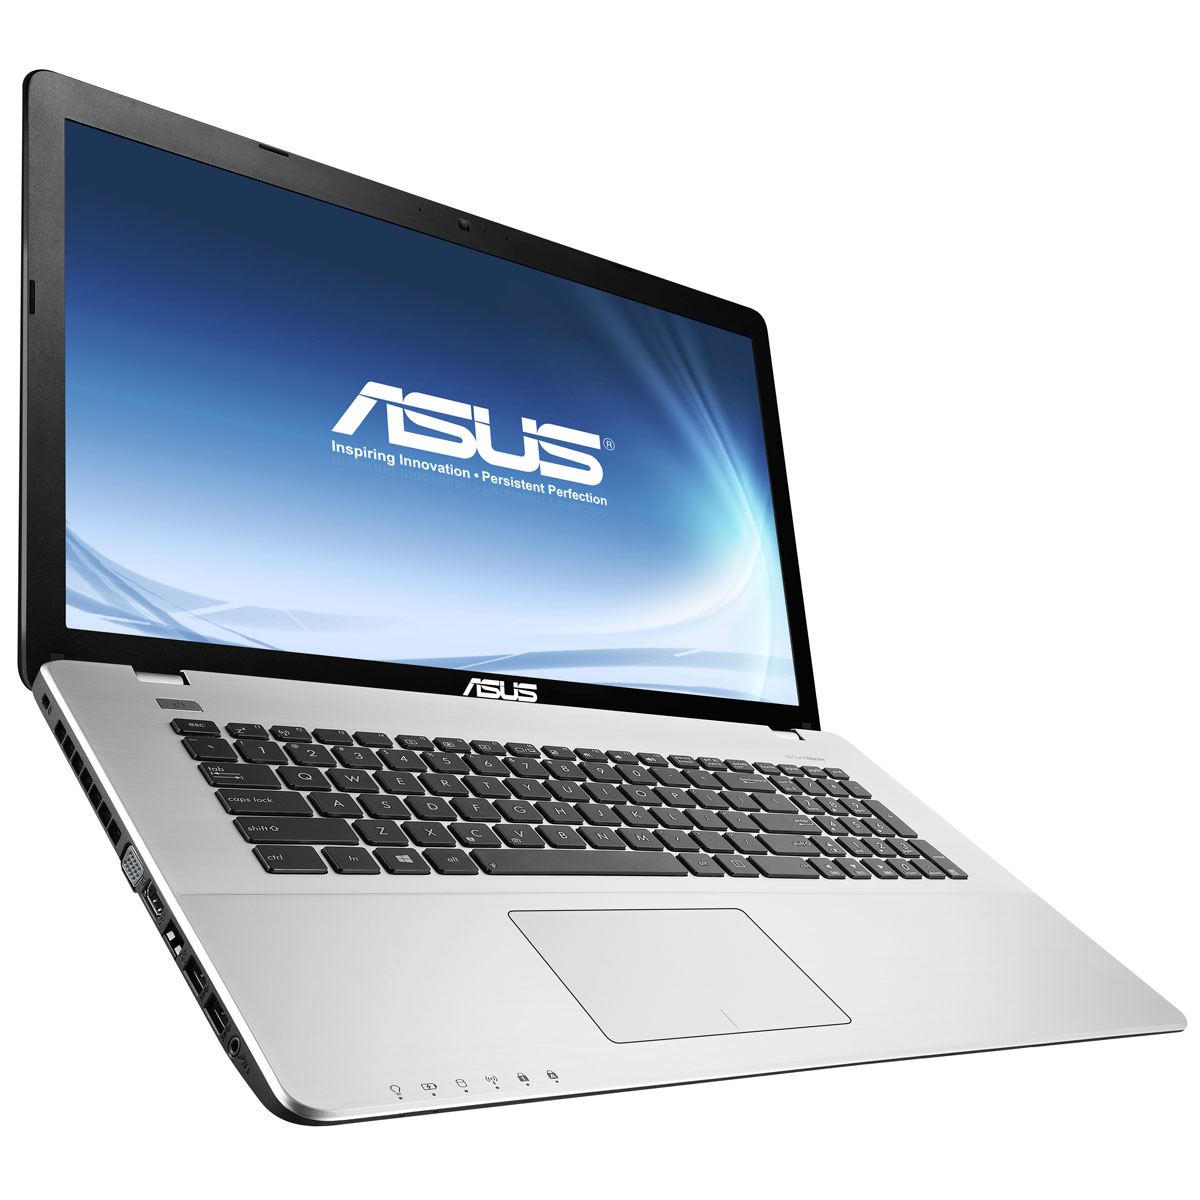 asus r751ln ty067h pc portable asus sur ldlc. Black Bedroom Furniture Sets. Home Design Ideas